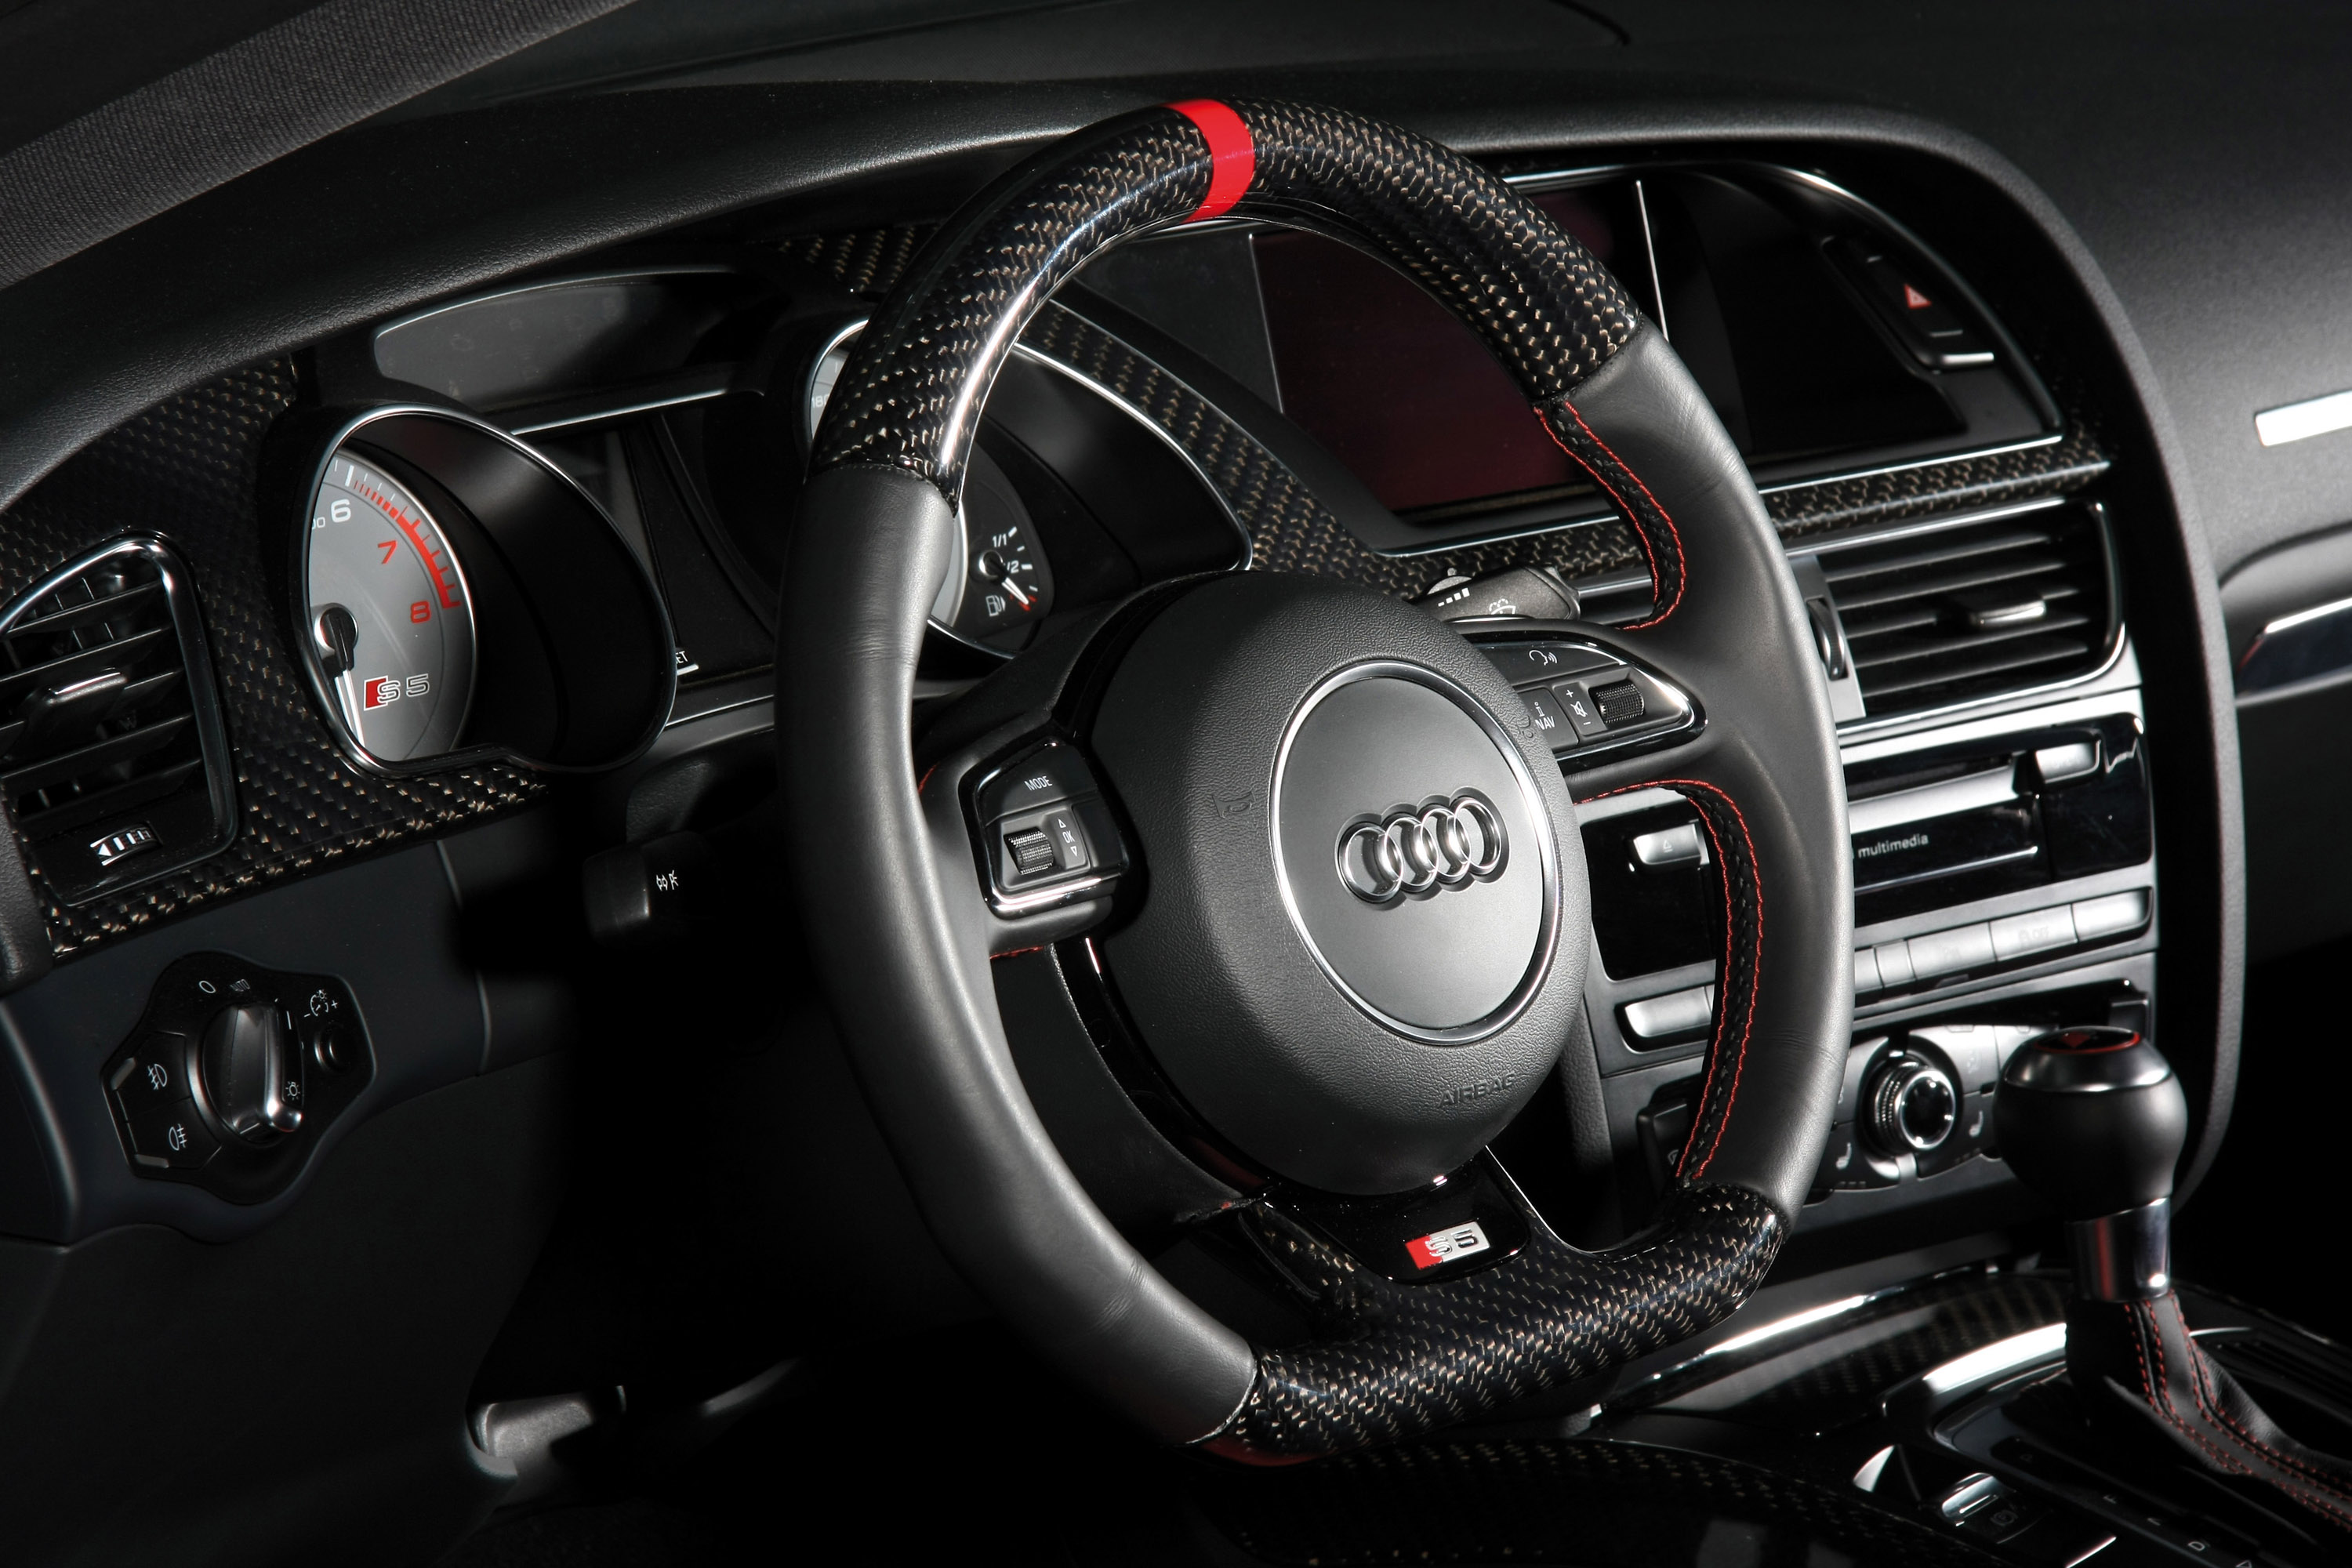 http://www.automobilesreview.com/img/senner-audi-s5-coupe/senner-audi-s5-coupe-11.jpg